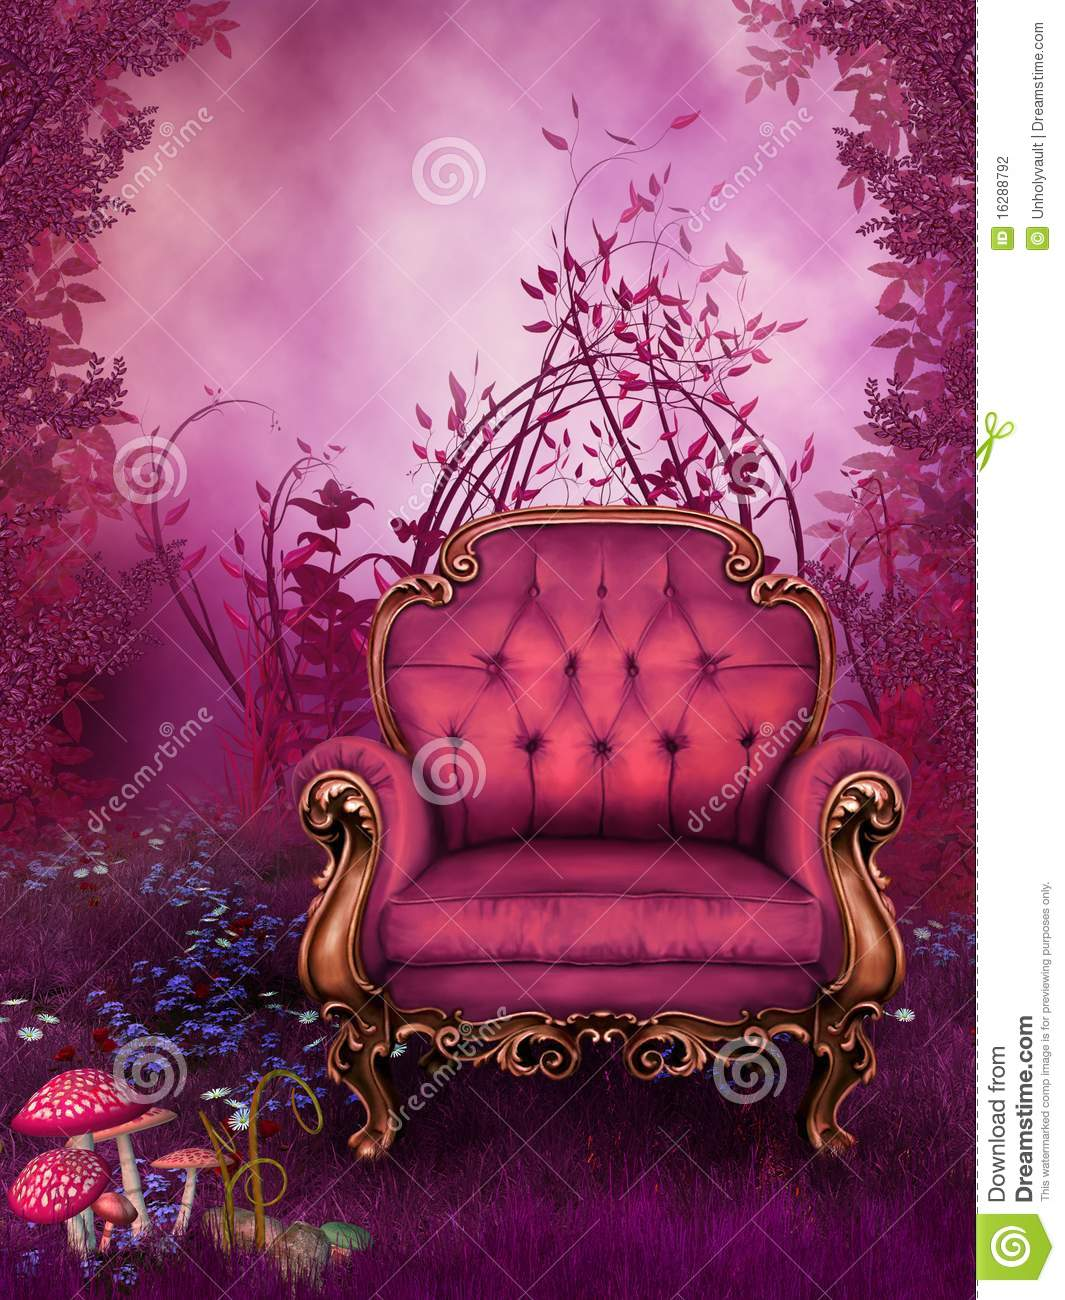 Fantasy Garden With A Pink Chair Stock Illustration